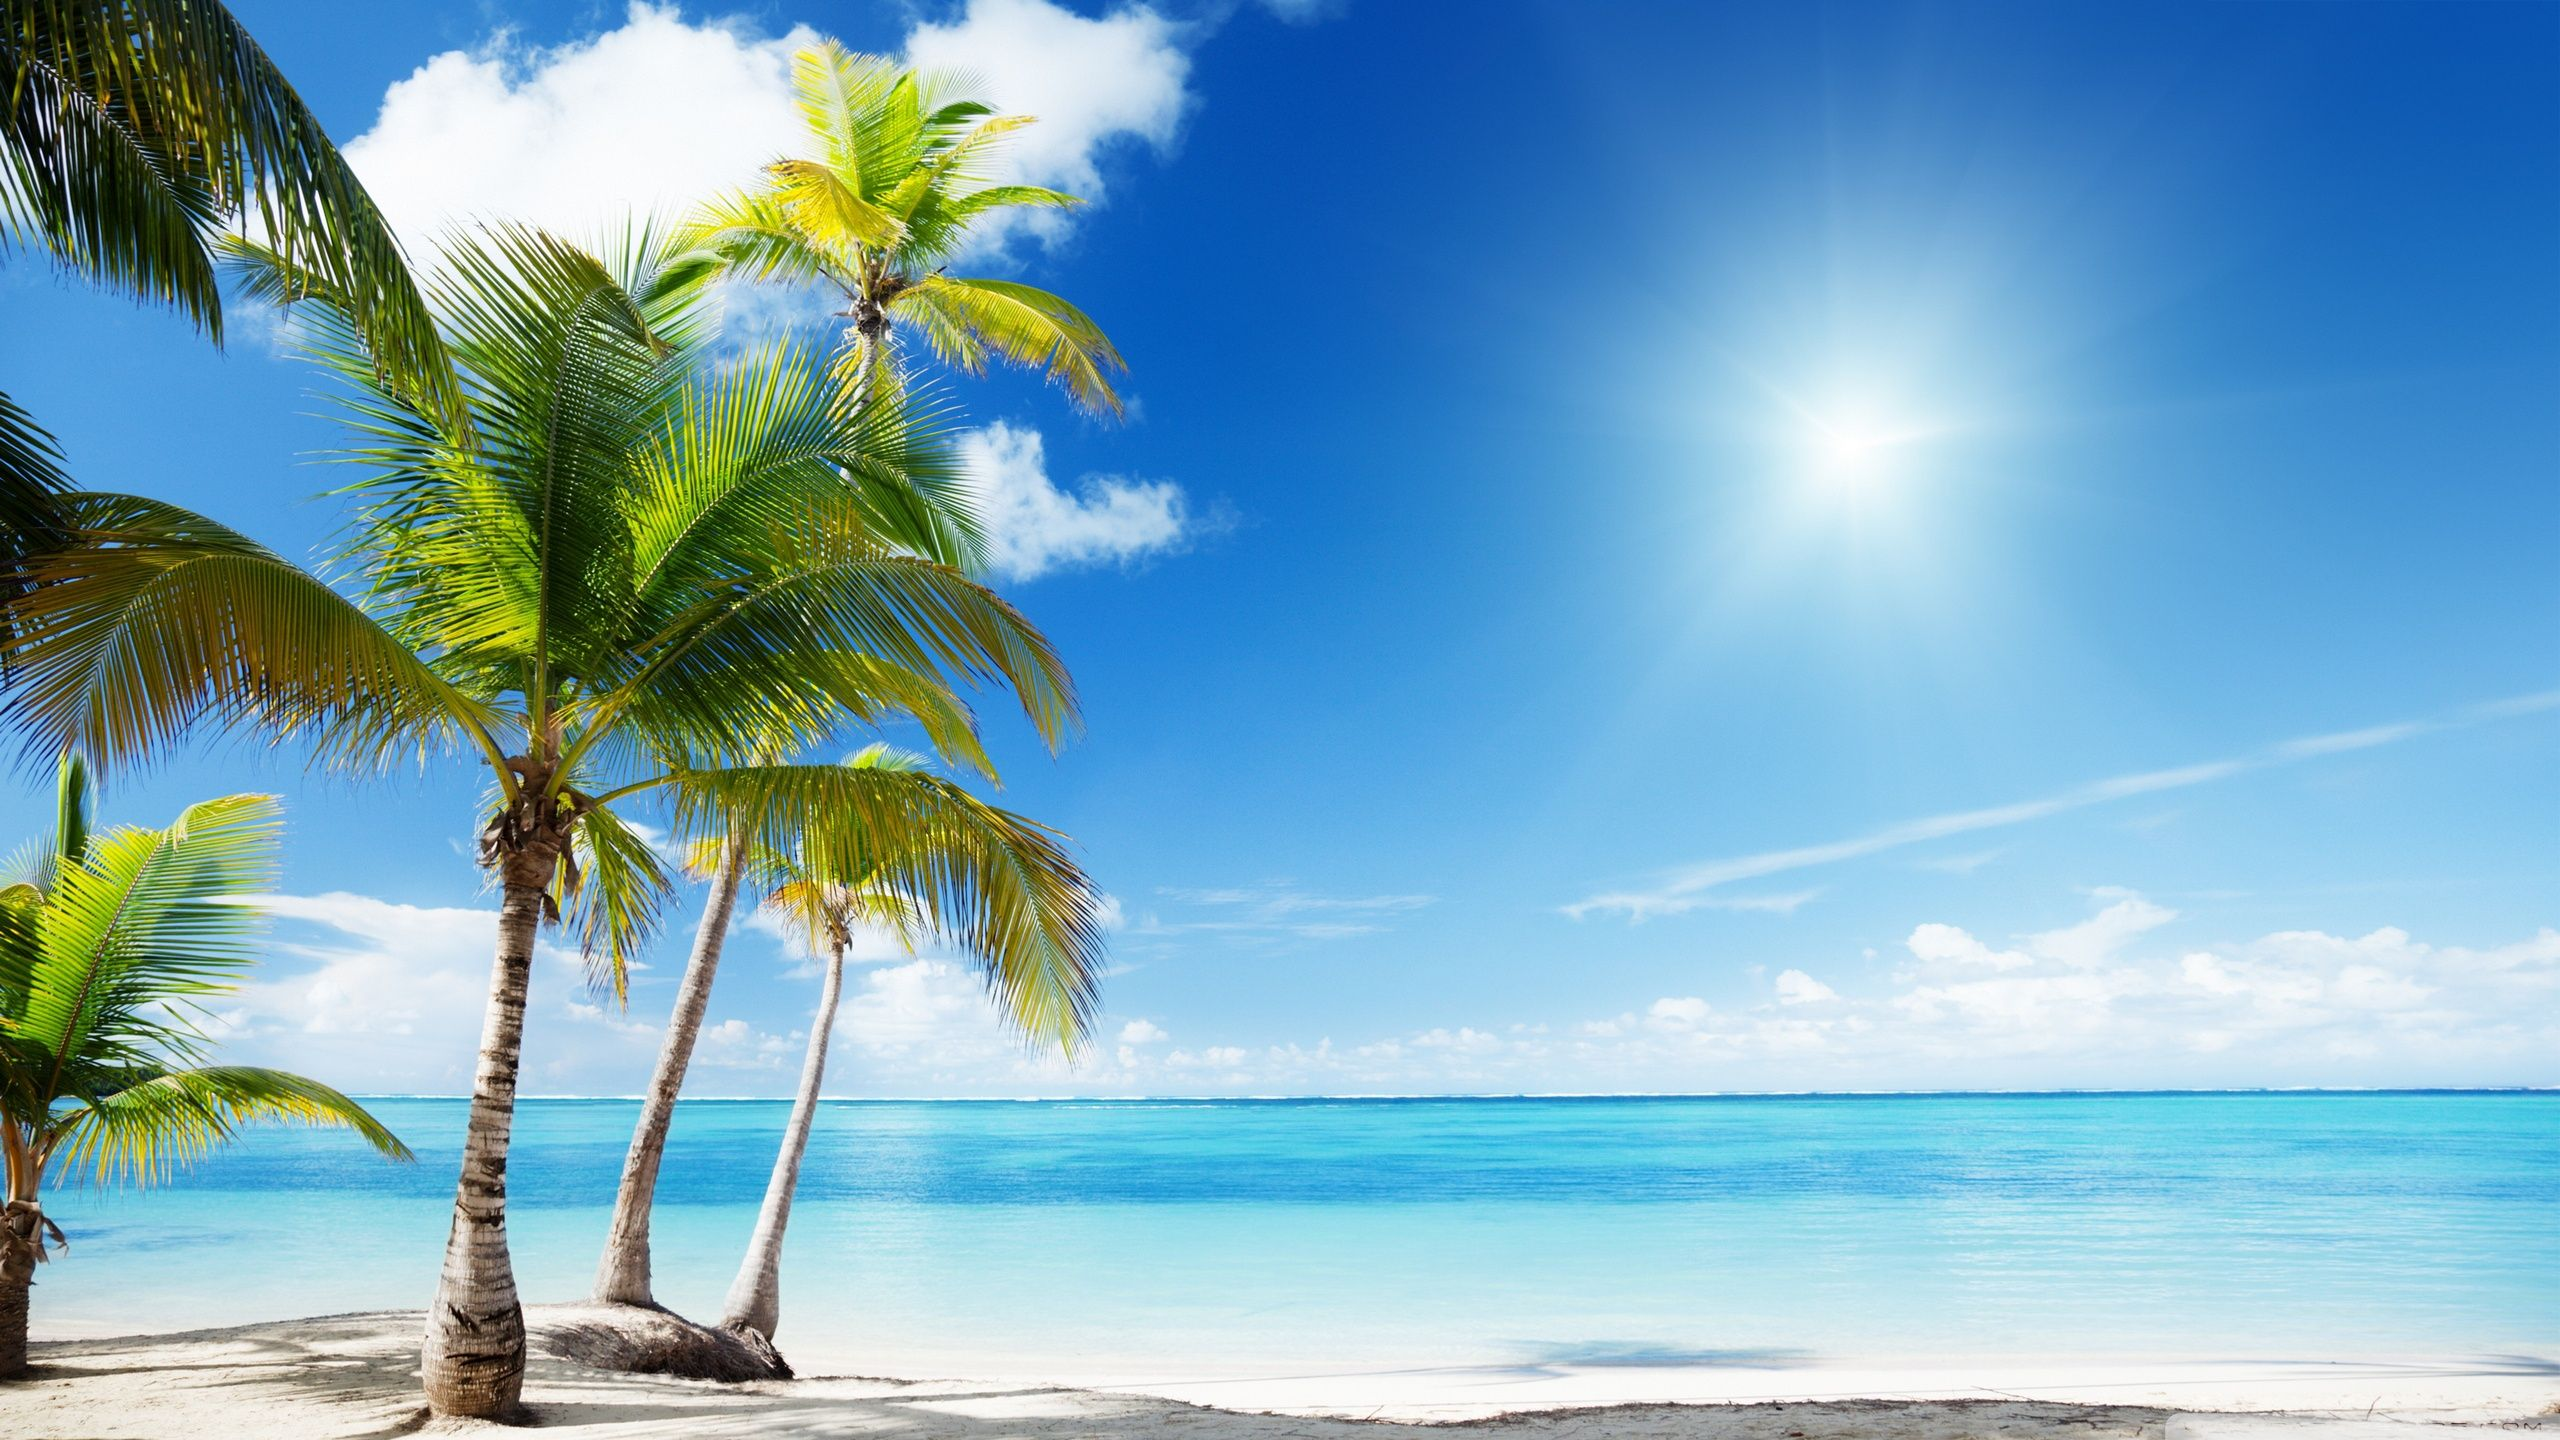 Download Tropical Beach Wallpapers Full Hd Is Cool Wallpapers Beach Wallpaper Paradise Wallpaper Beach Pictures Kids